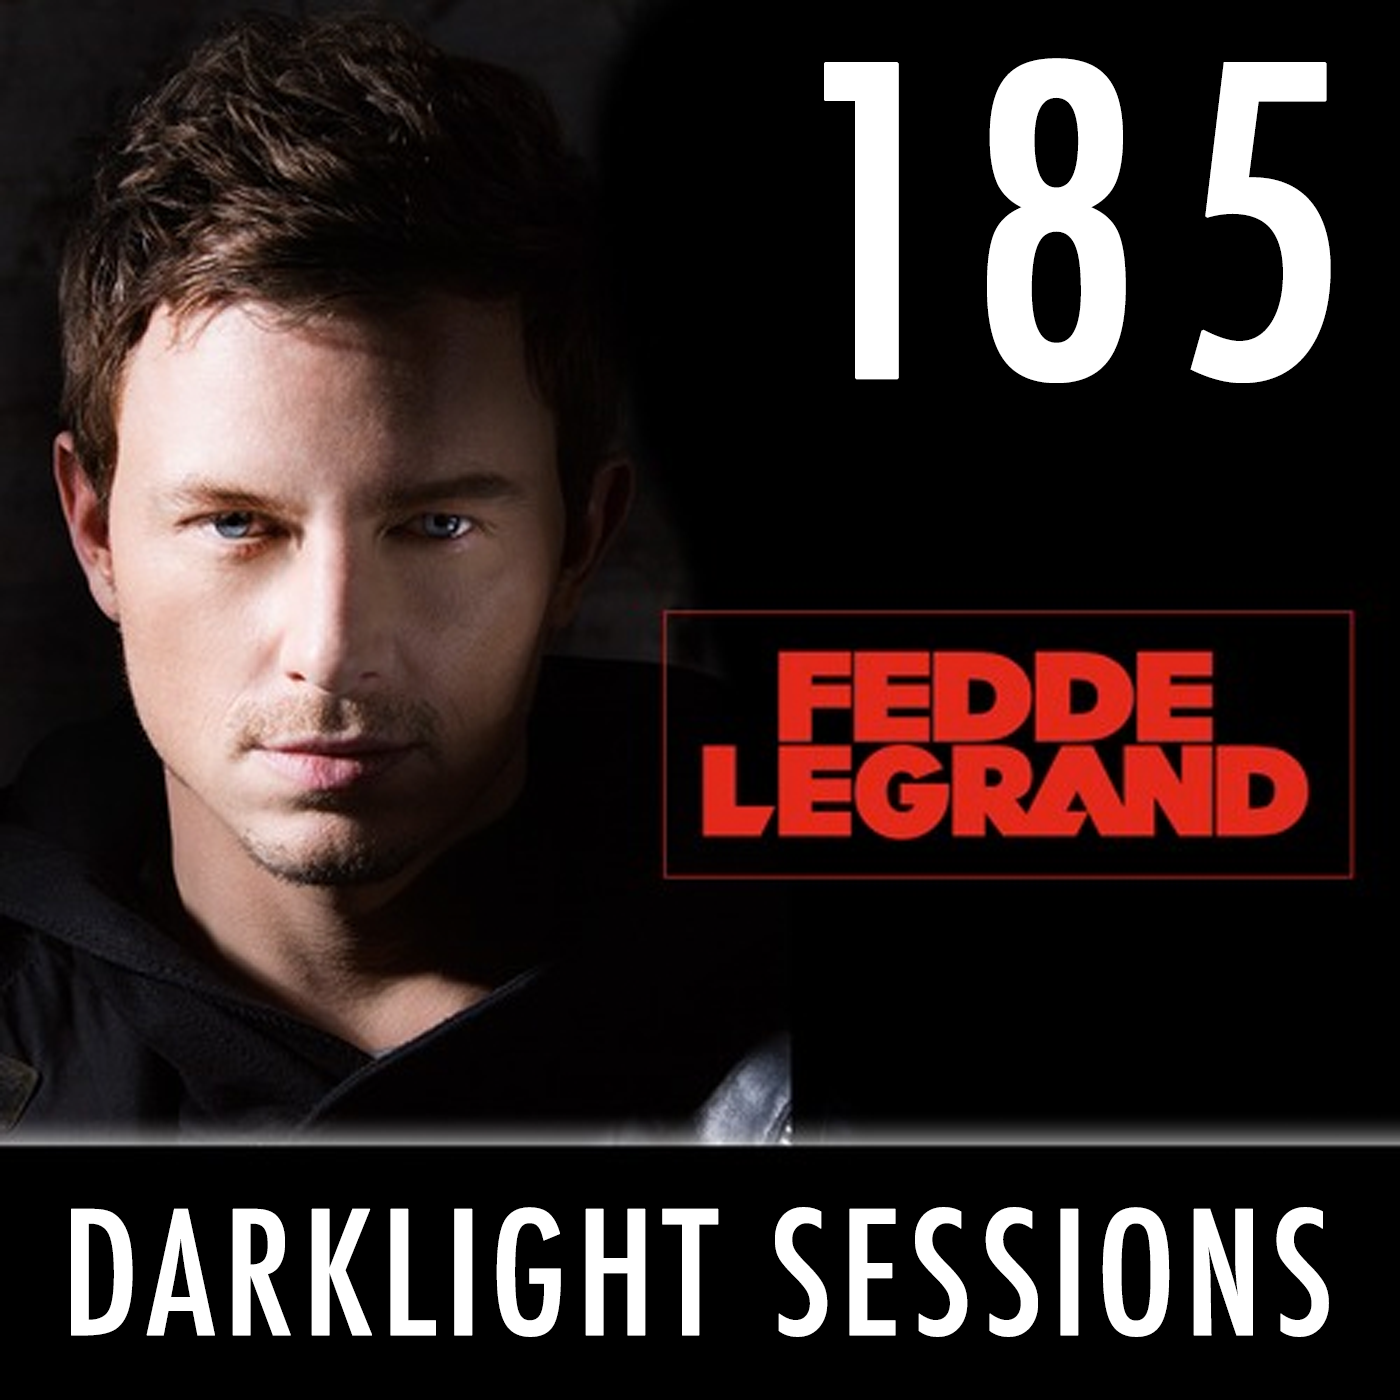 Darklight Sessions 185